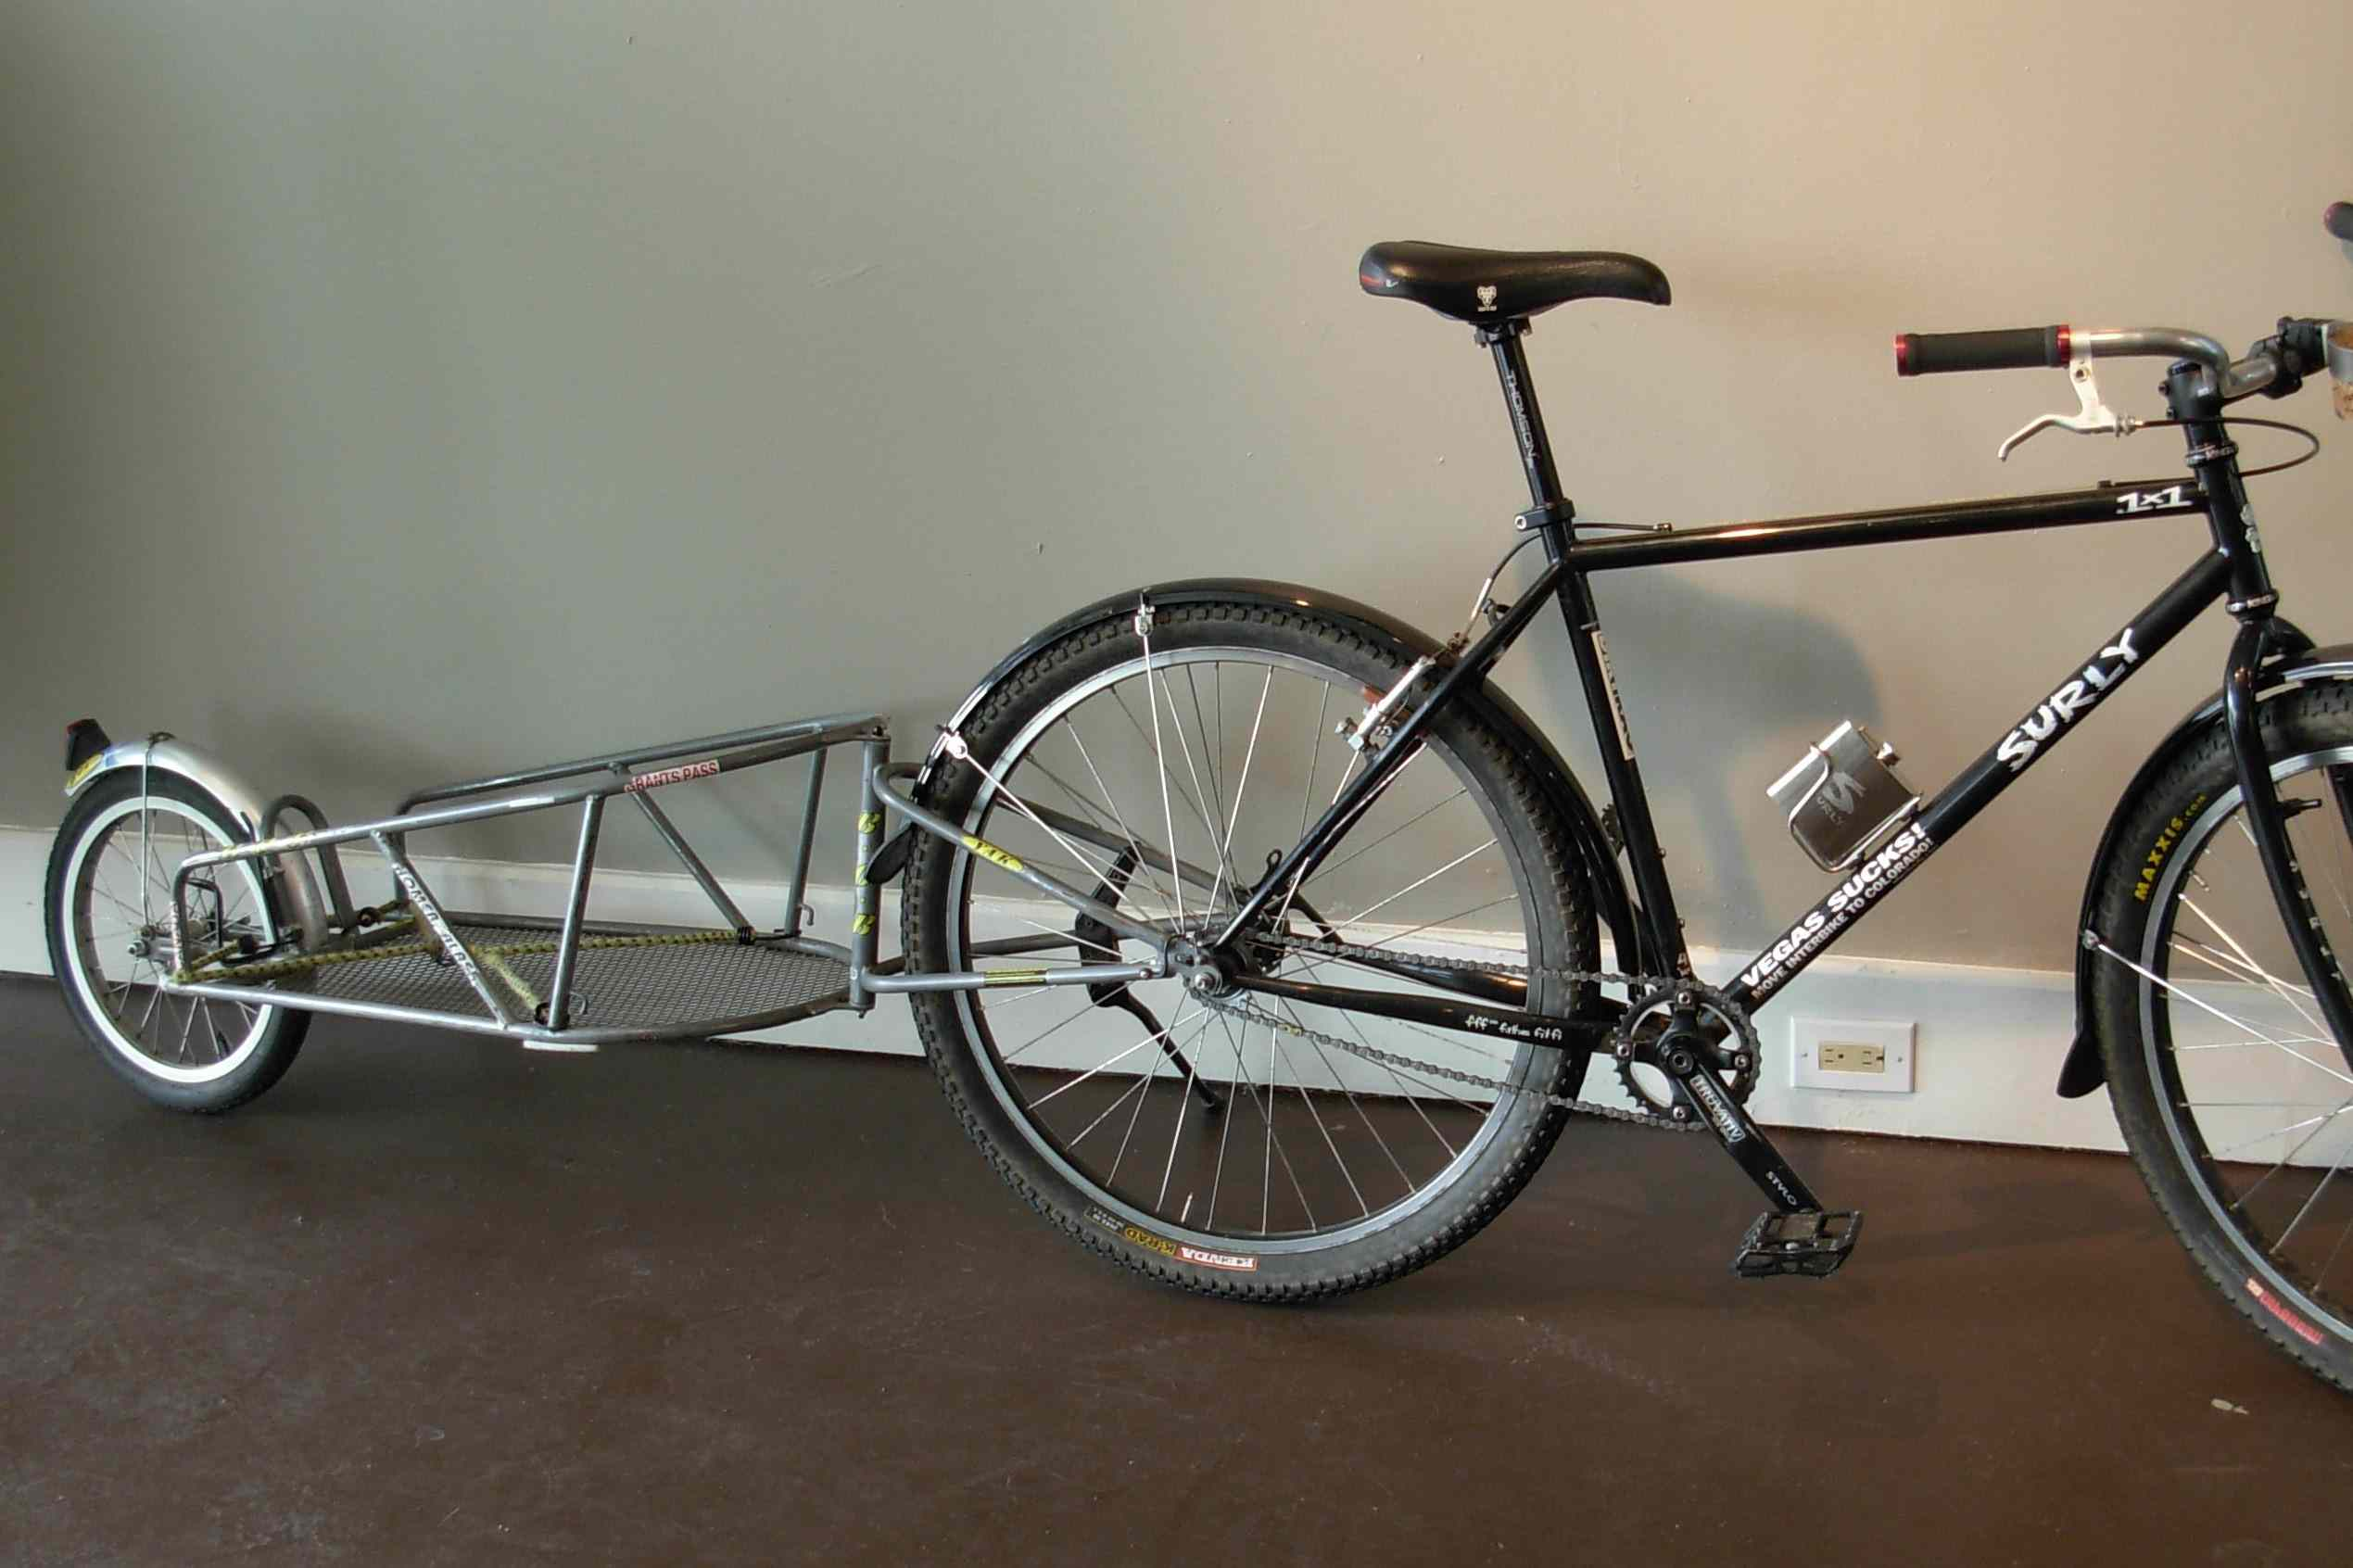 BOB trailer attached to a bike indoors